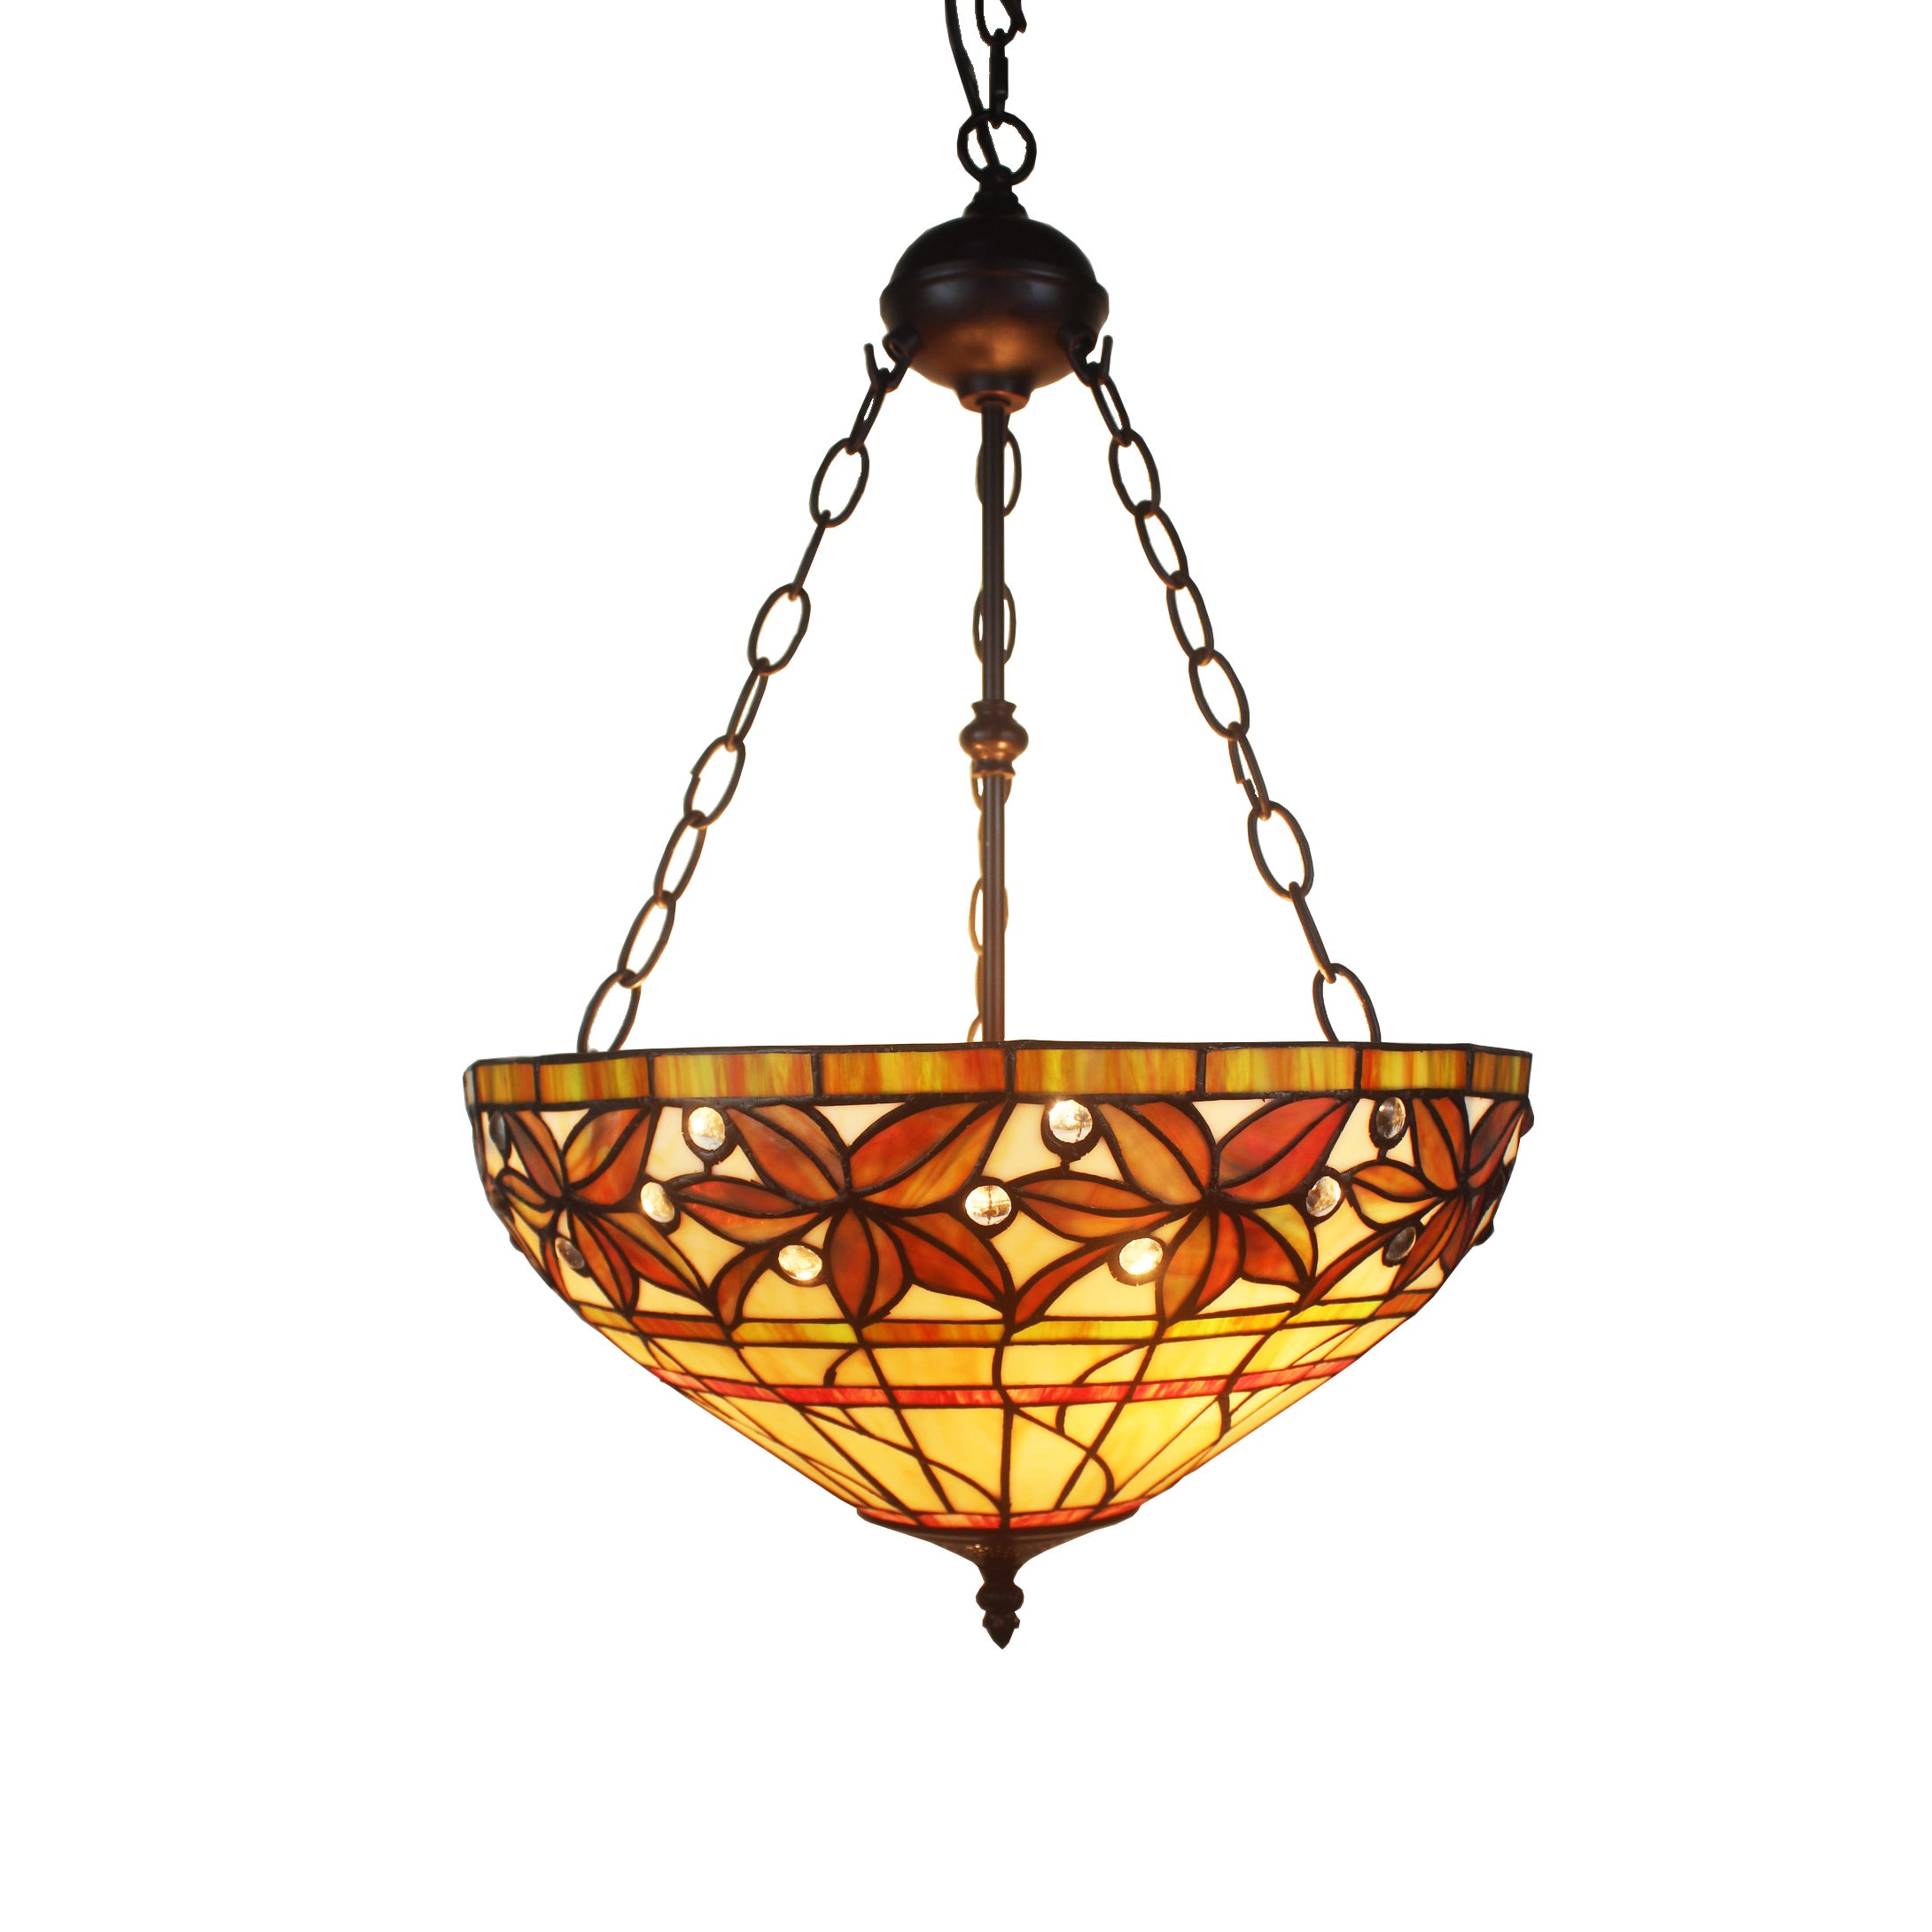 Shop Aiza 2-light Multicolor 16-inch Leafy Tiffany-style Ceiling ...